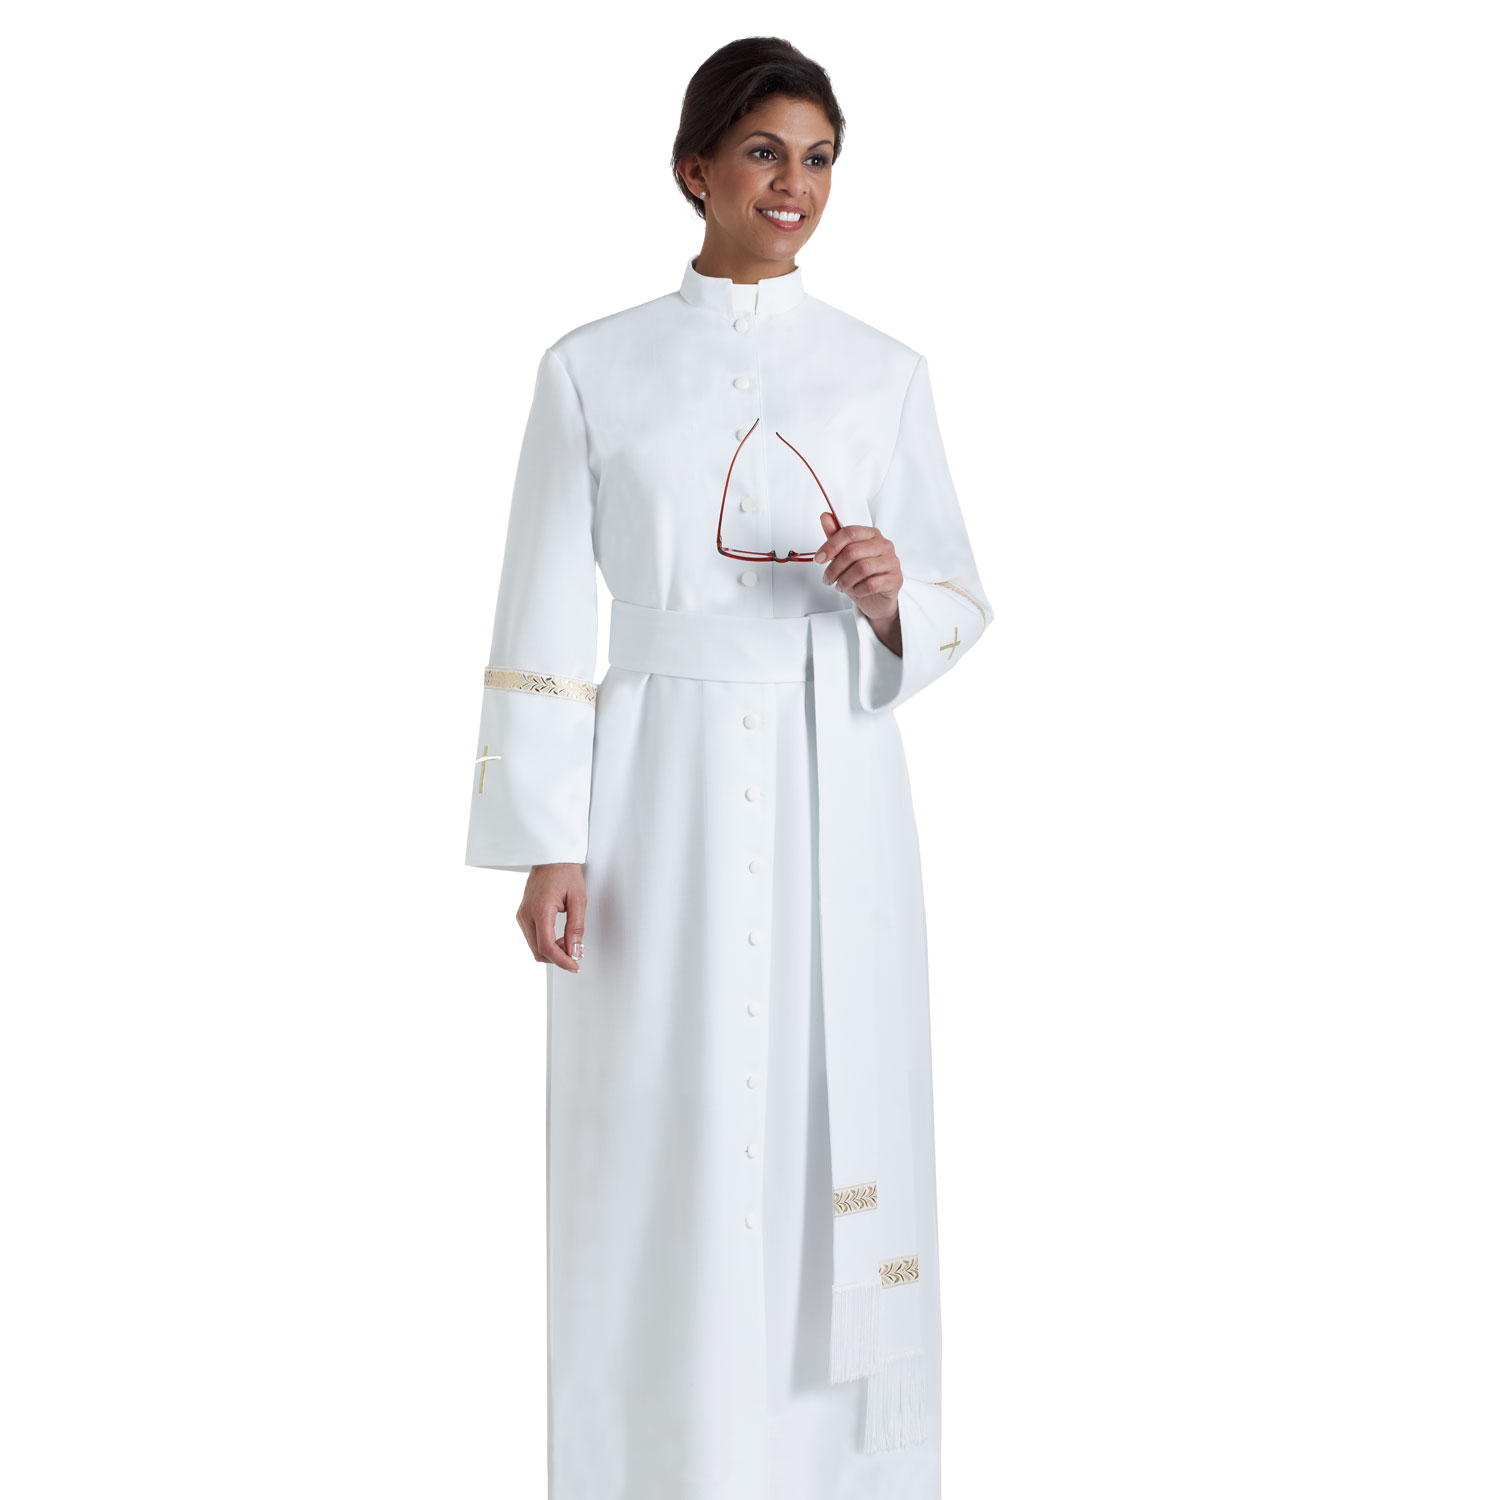 Women's Clergy Cassock | White